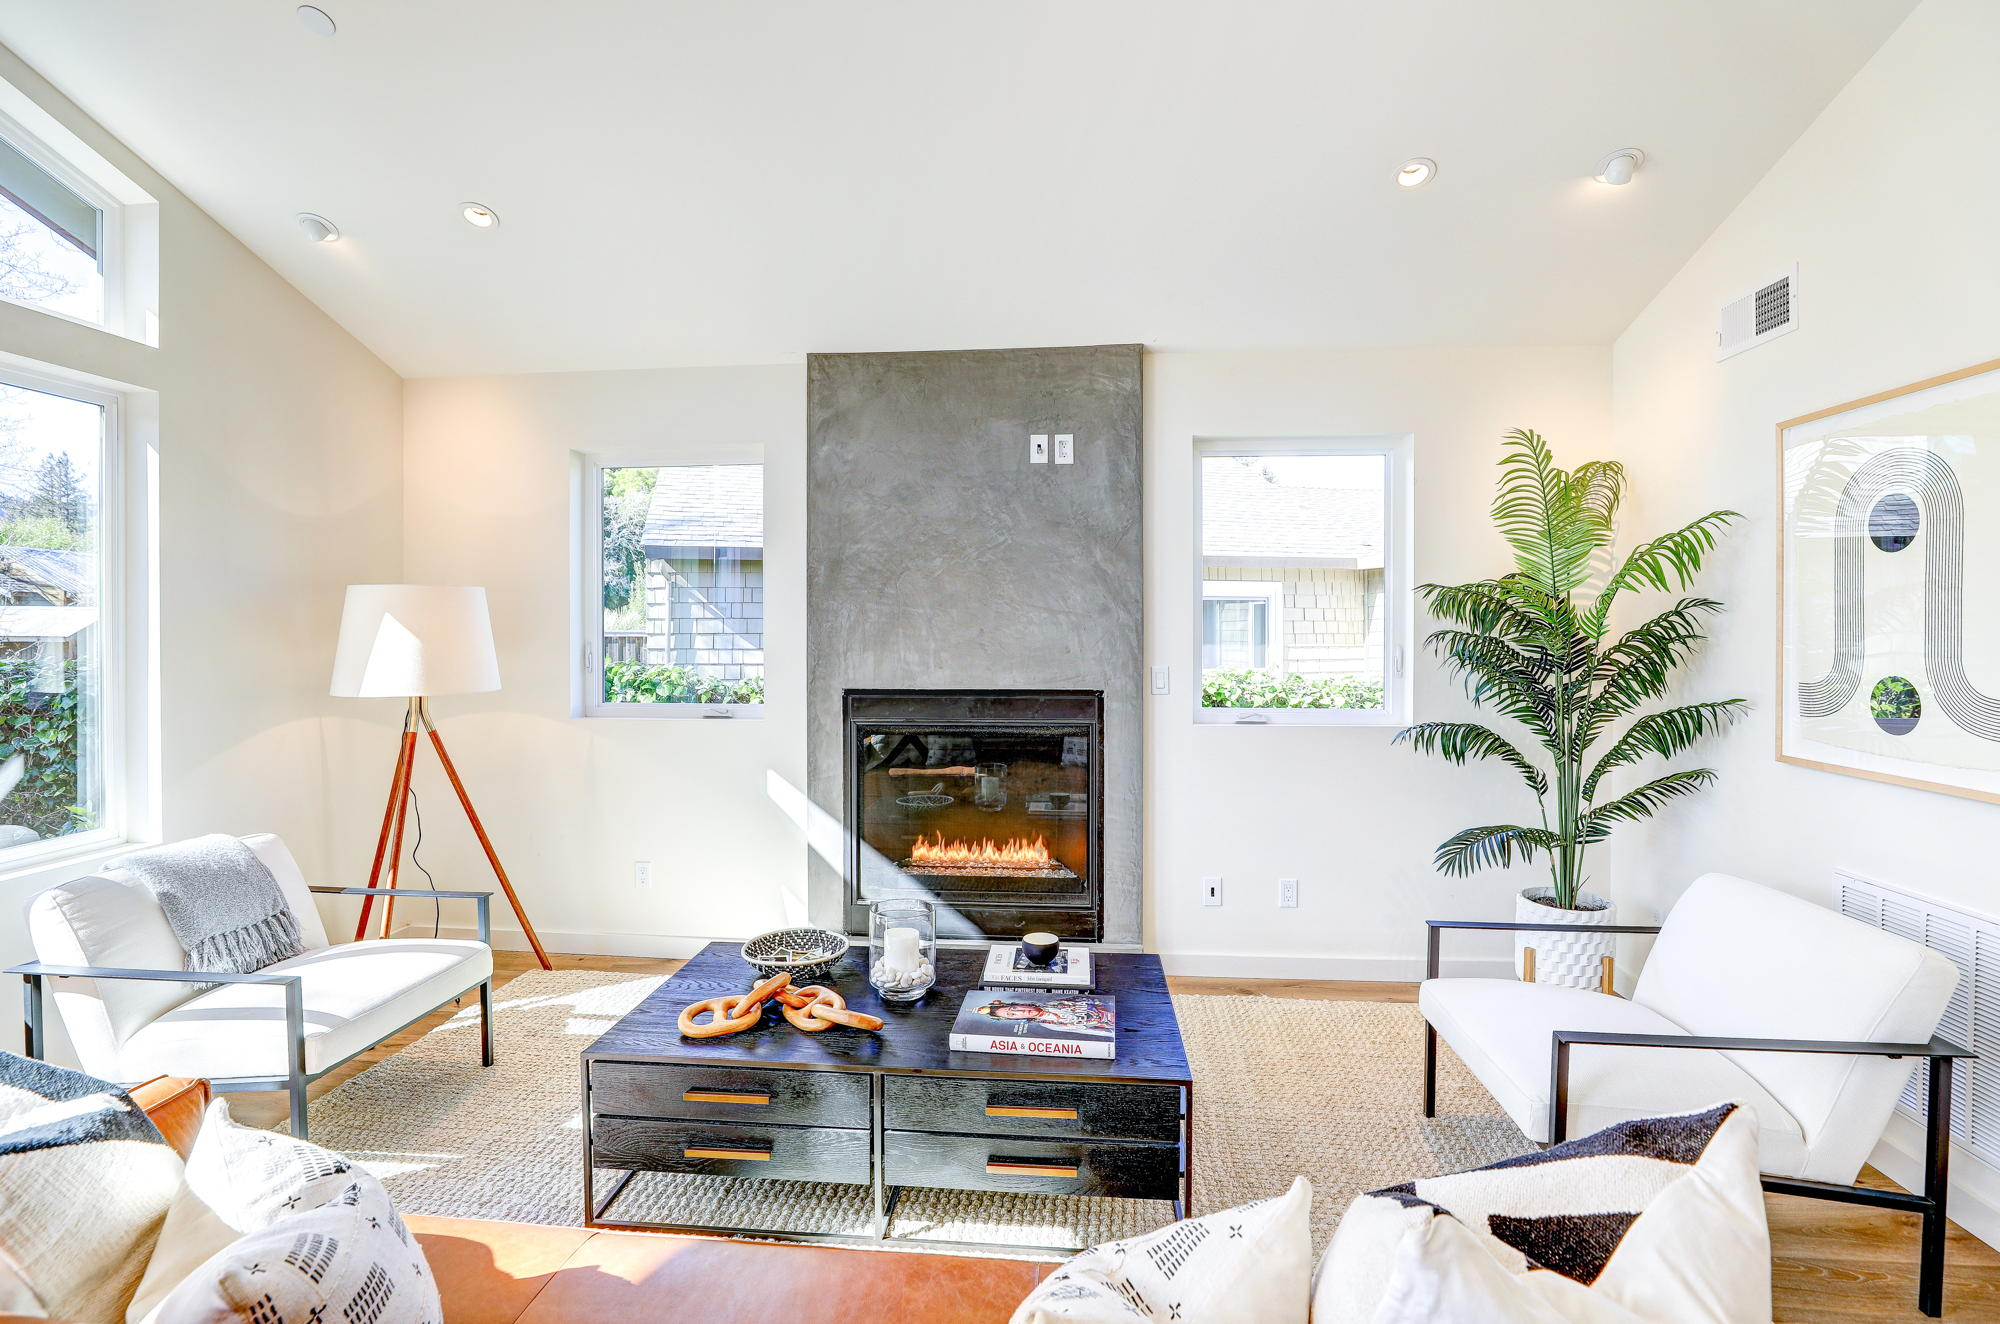 38 Ryan Avenue, Mill Valley - Sycamore Park Homes for sale - 14- Listed by Team Own Marin with Compass Real Estate.jpg